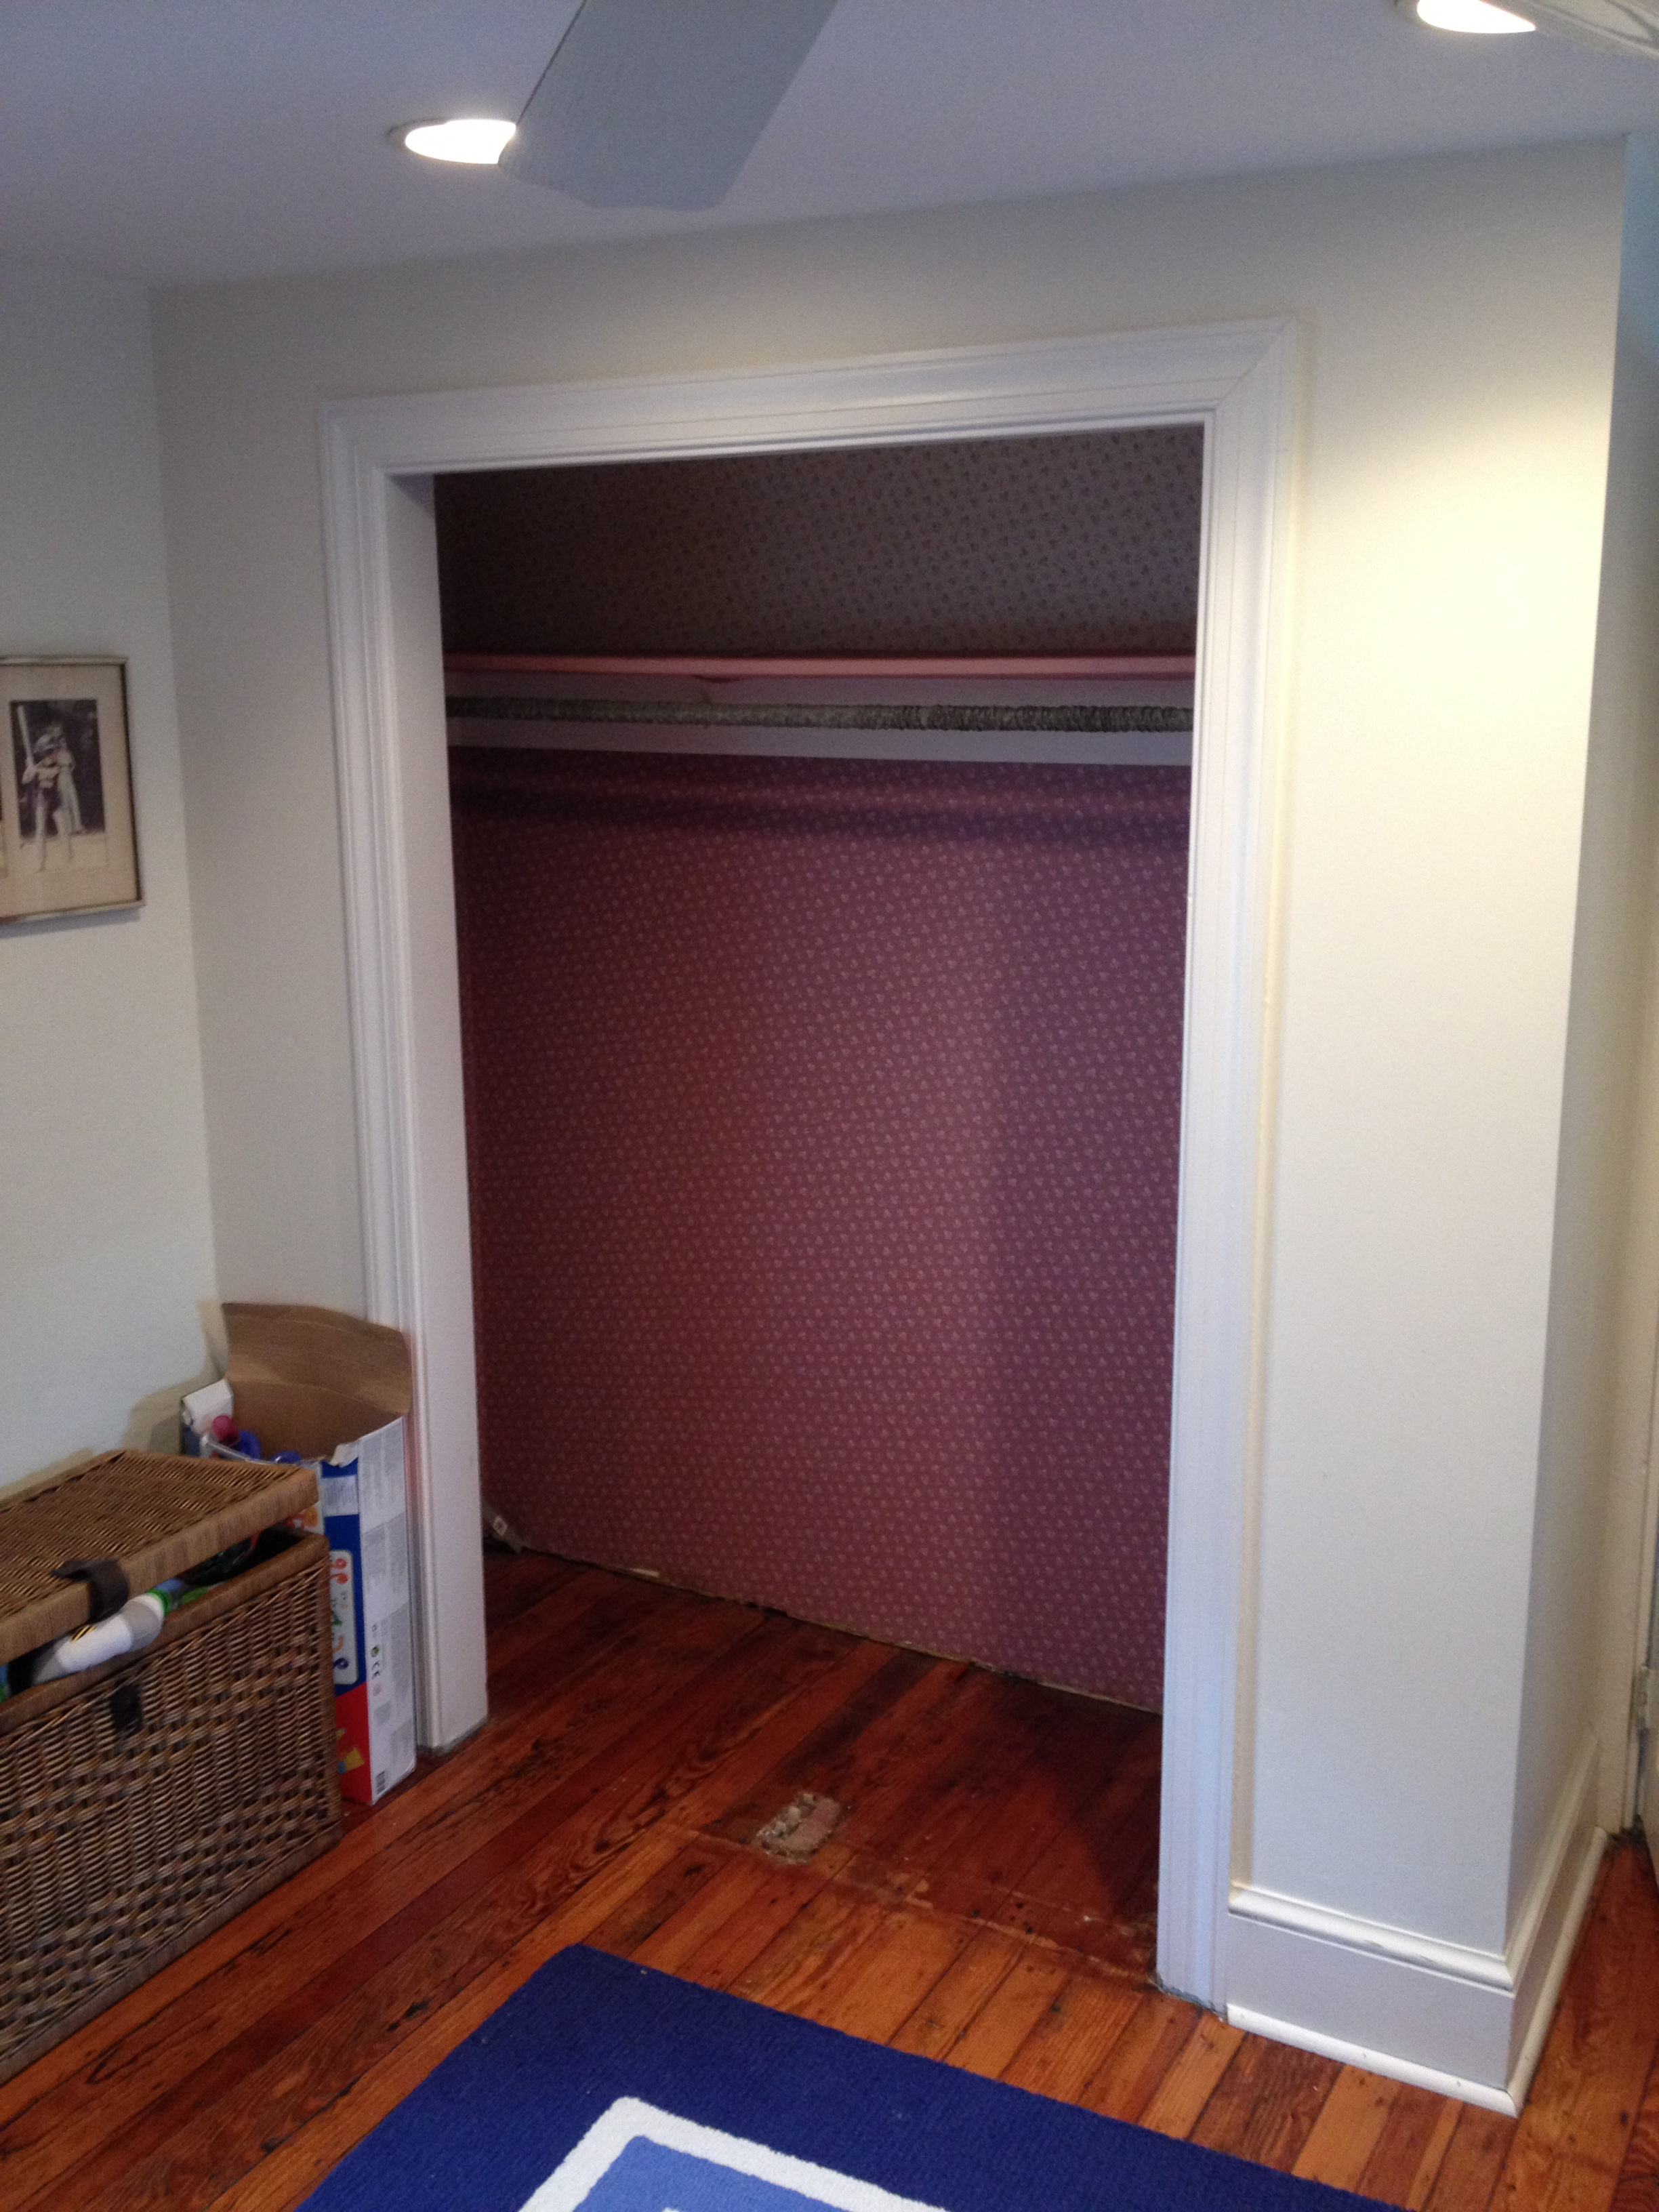 Plywood Door Designs For Rooms Playroom Closet Renovation Wayne Pa Aaron Whomsley Llc